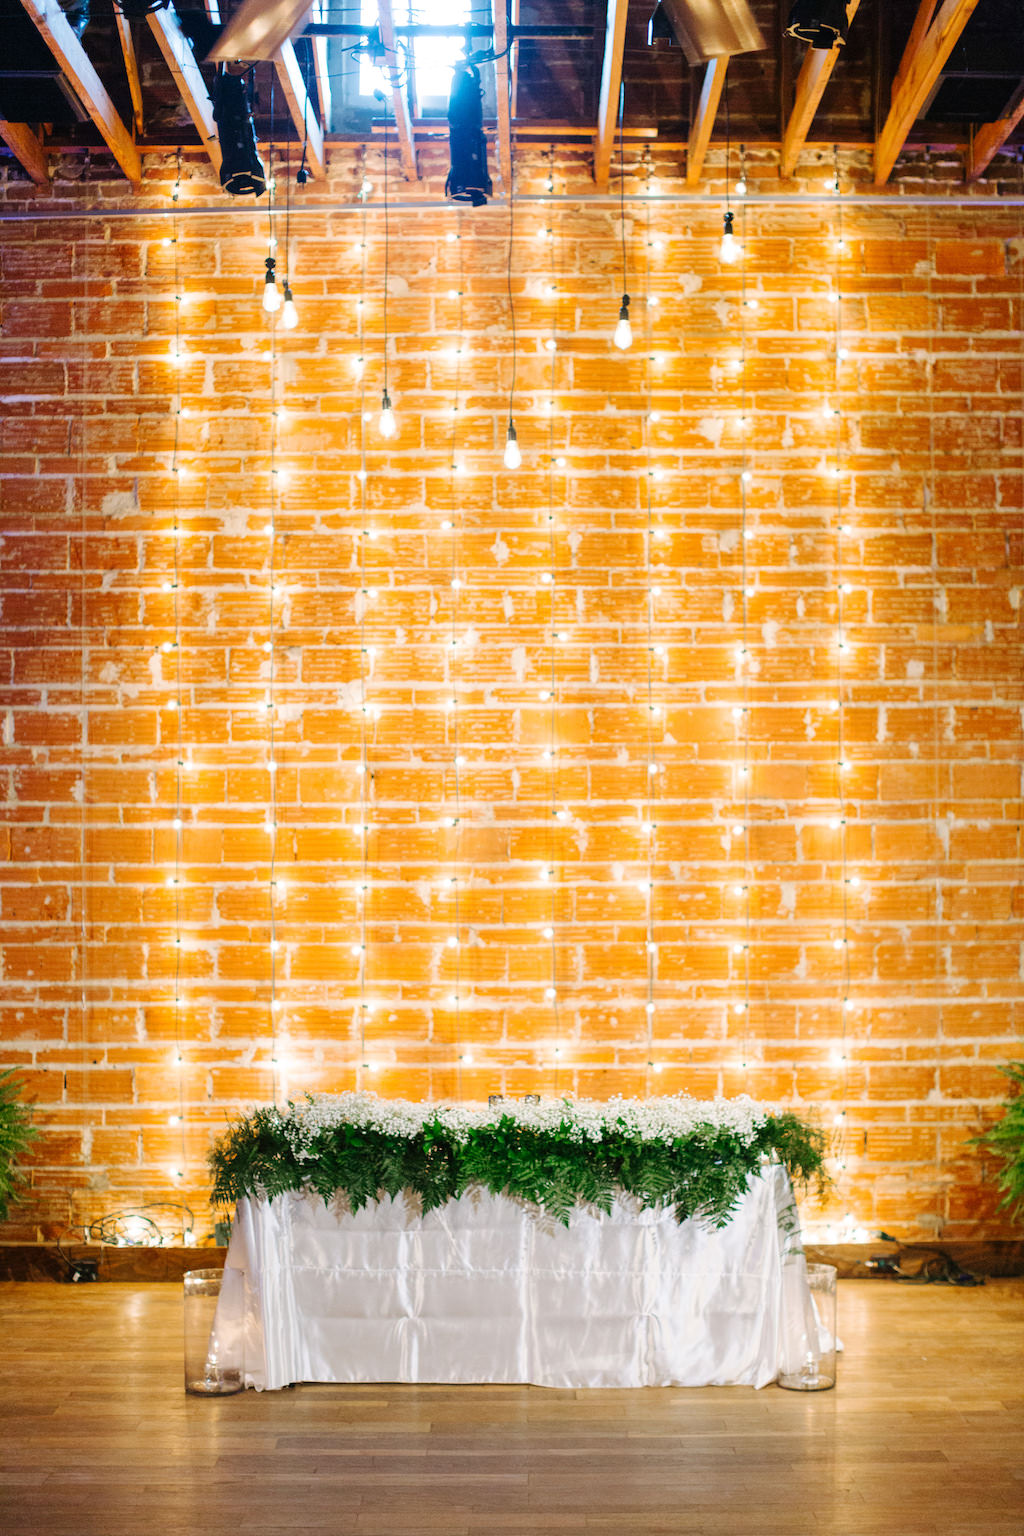 Modern, Romantic Reception and Florida Wedding Decor, Sweetheart Table, with Babies Breath Garland Florals, String light Backdrop on Exposed Brick Wall | Tampa Bay Premier Wedding Venue NOVA 535 in Downtown St. Pete